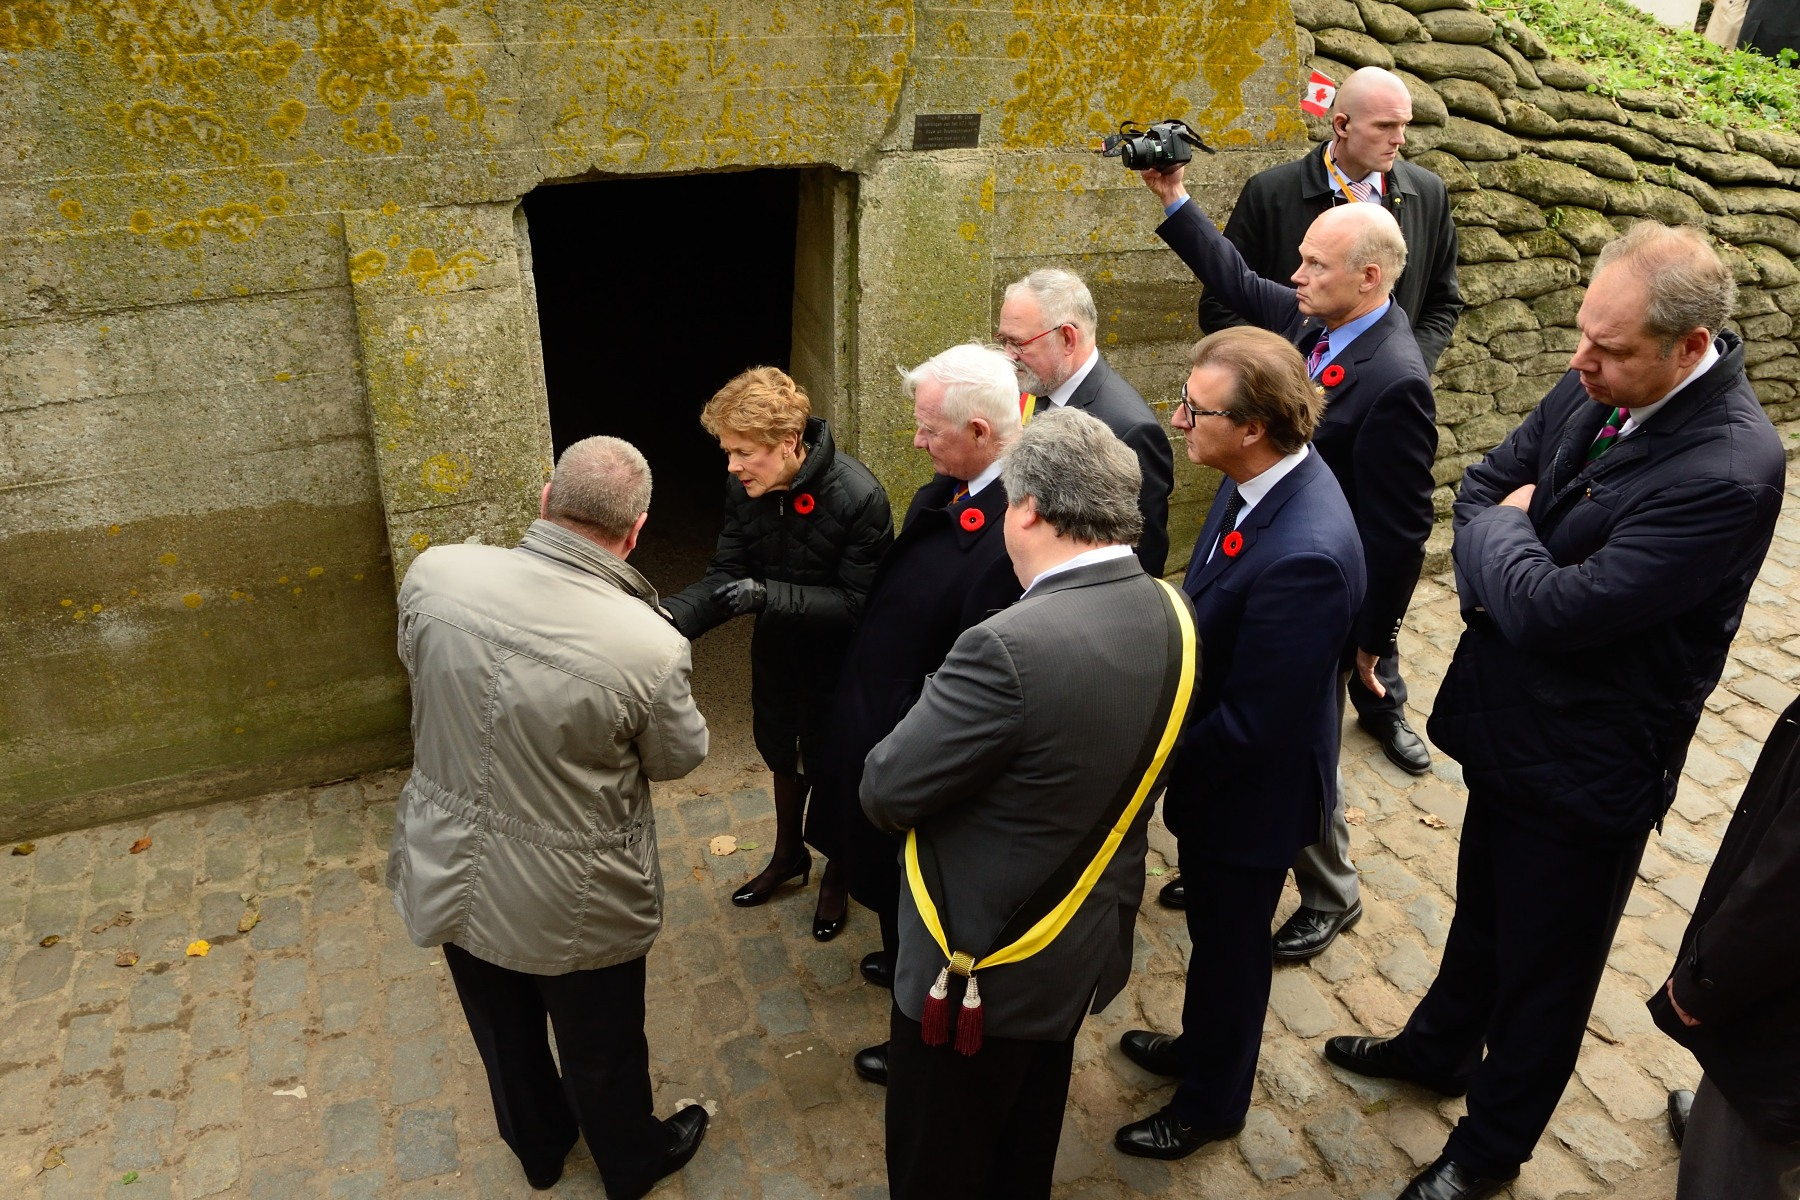 Their Excellencies and Canadian delegates visited the site of the Canadian Officer-Surgeon and poet John McCrae, who wrote the famous poem In Flanders Fields 100 years ago.